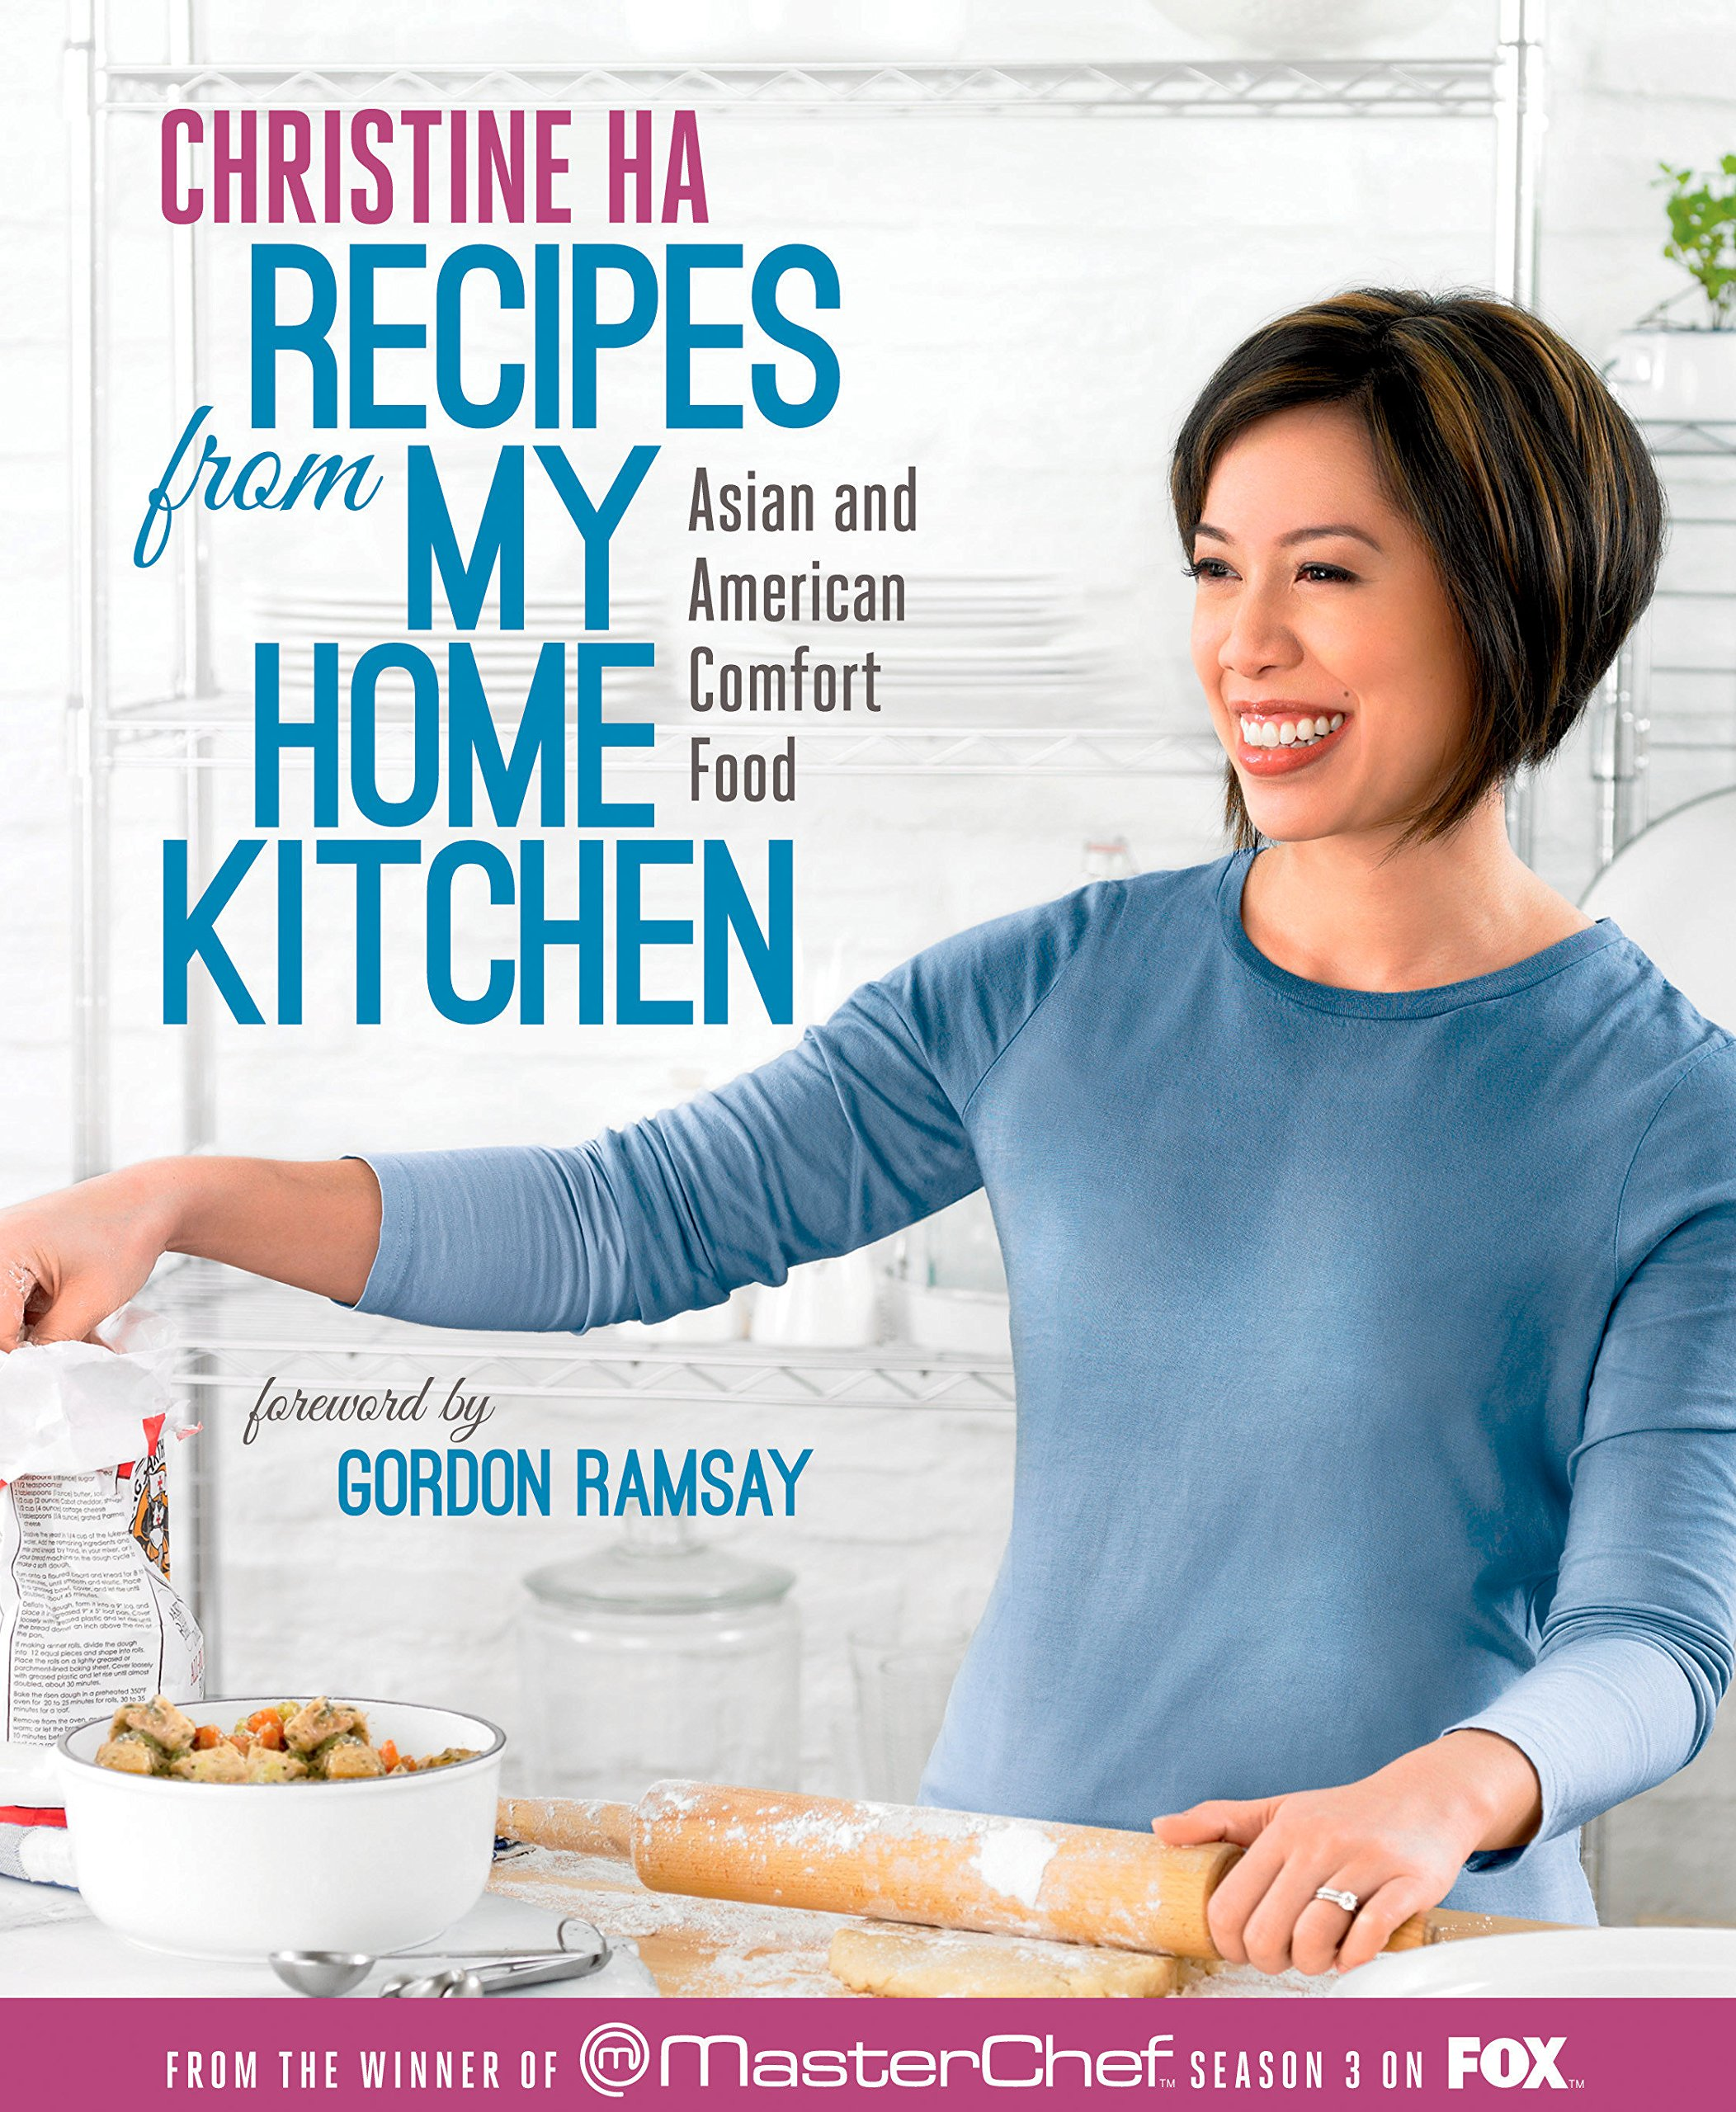 Recipes from my home kitchen asian and american comfort food from recipes from my home kitchen asian and american comfort food from the winner of masterchef season 3 on fox christine ha gordon ramsay 8601406704961 fandeluxe Gallery